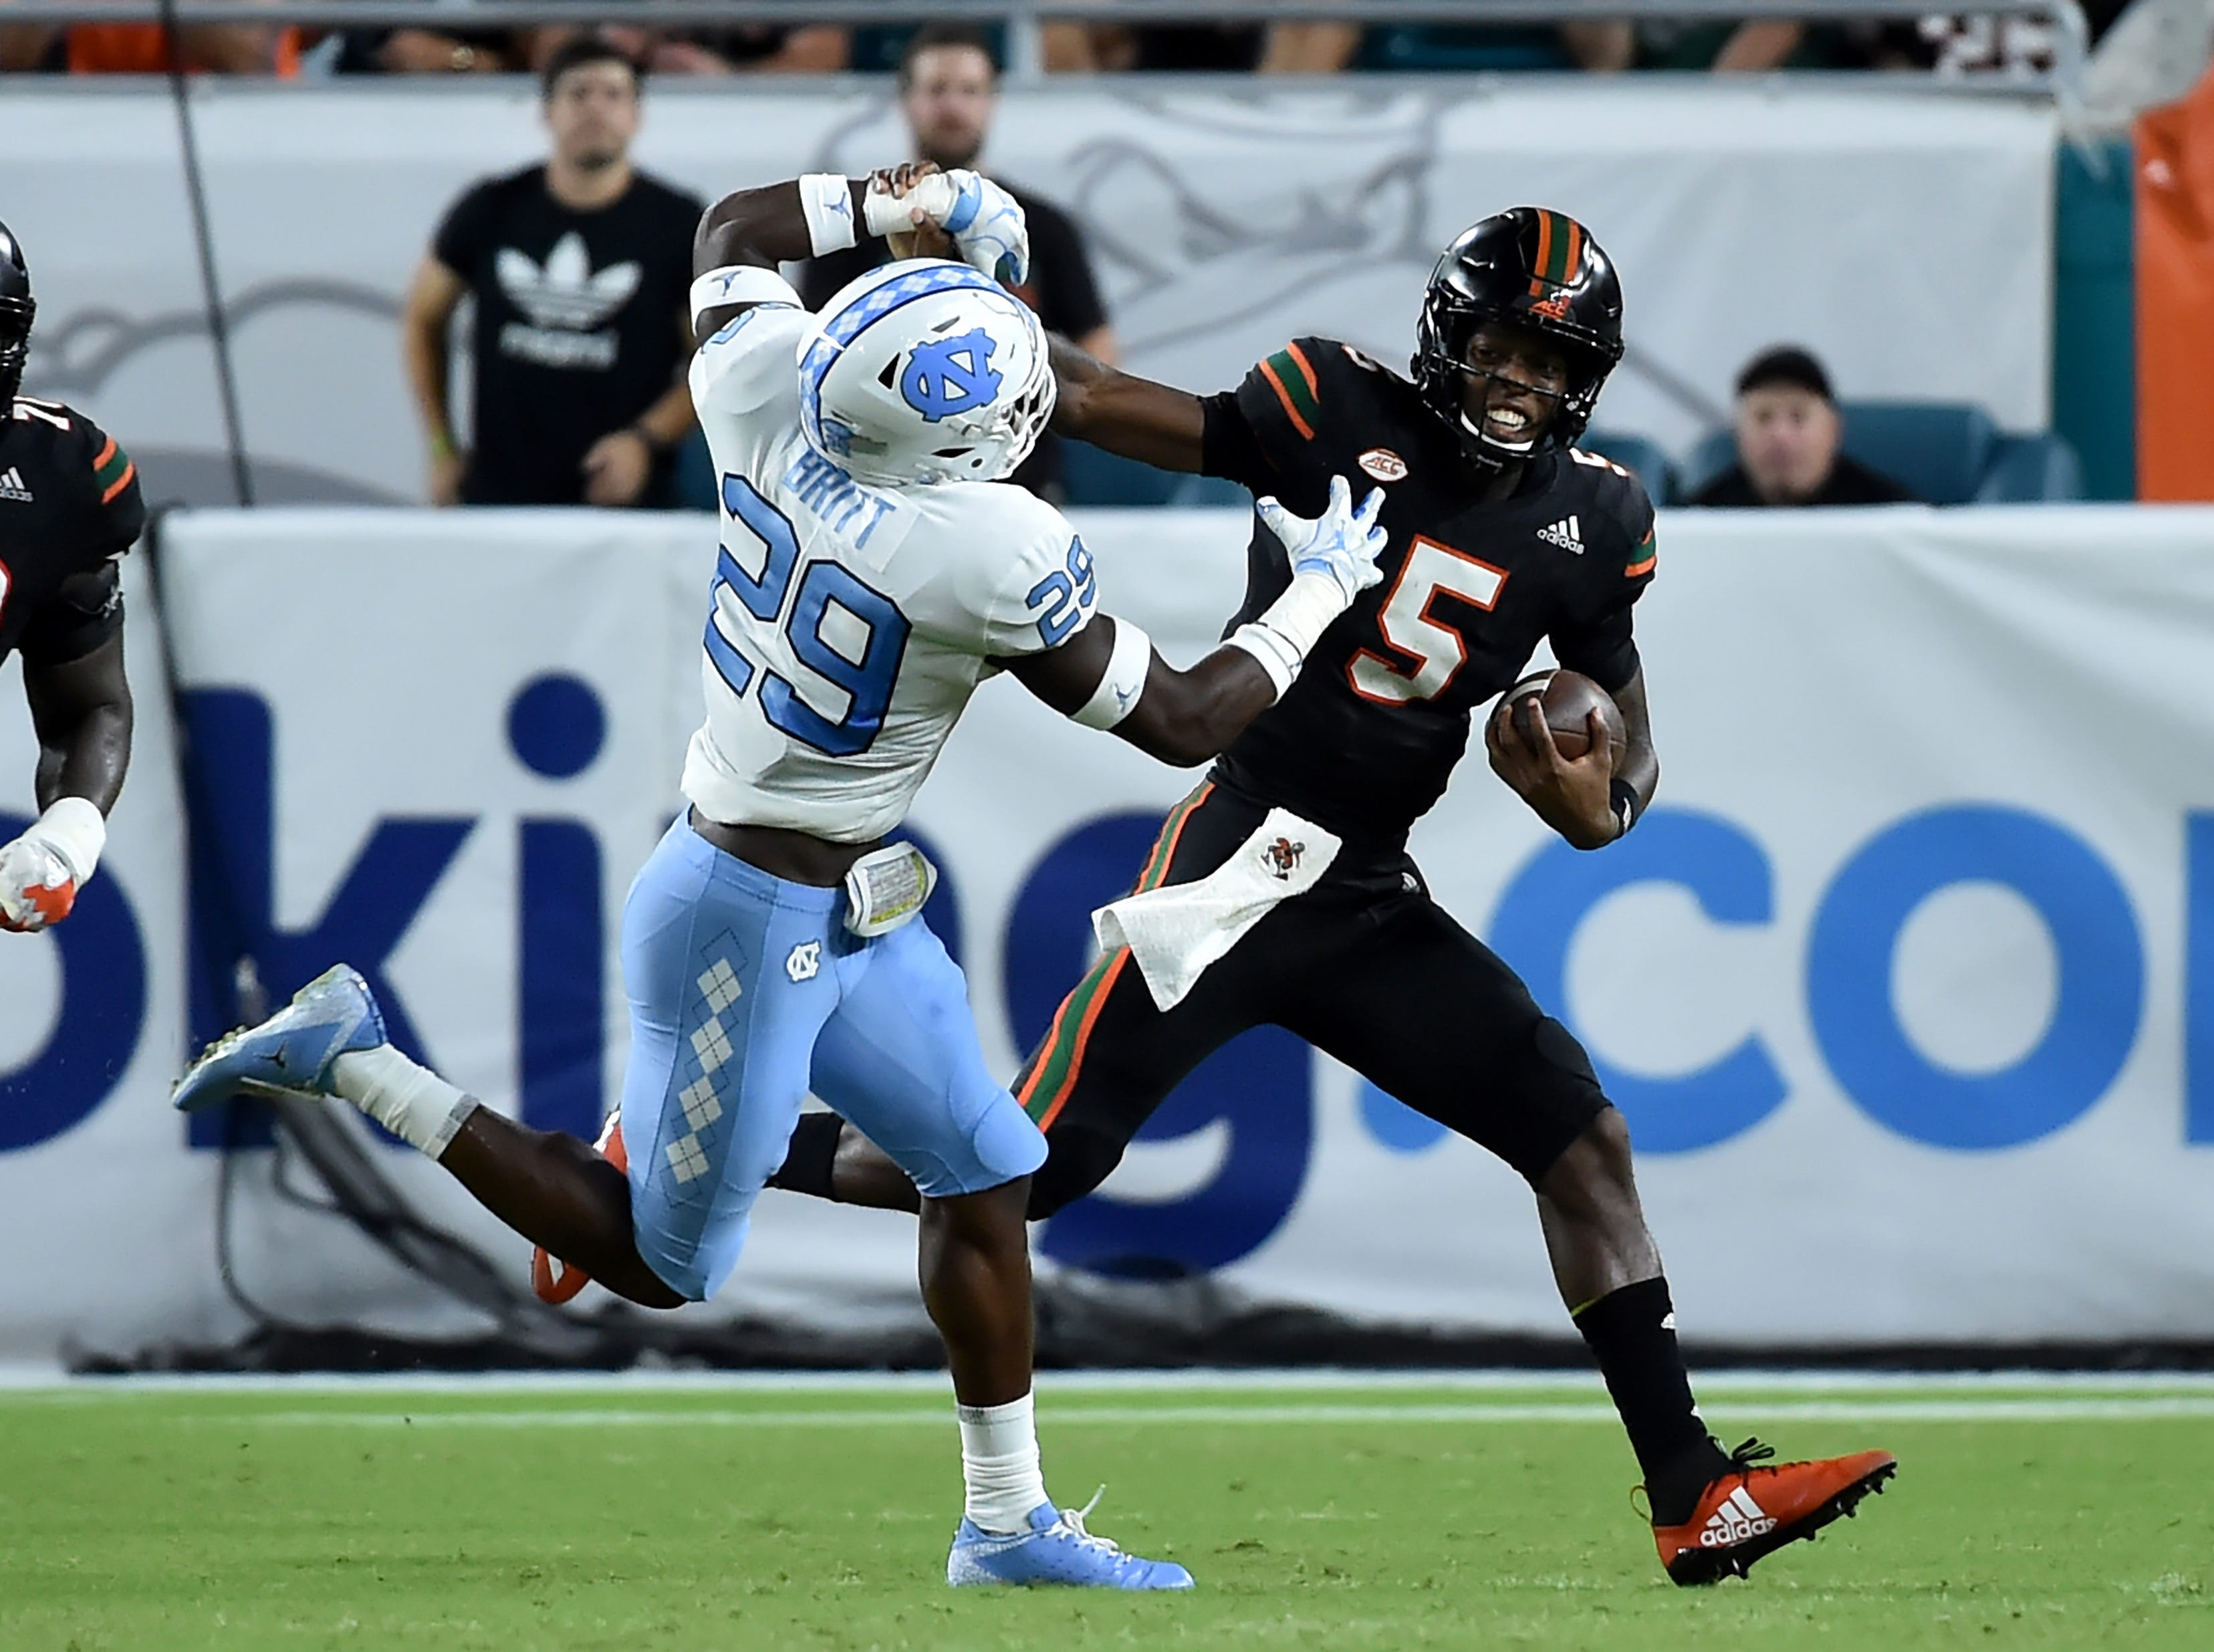 Miami Hurricanes quarterback N'Kosi Perry (5) stiff-arms North Carolina Tar Heels safety J.K. Britt (29) during the second half at Hard Rock Stadium.